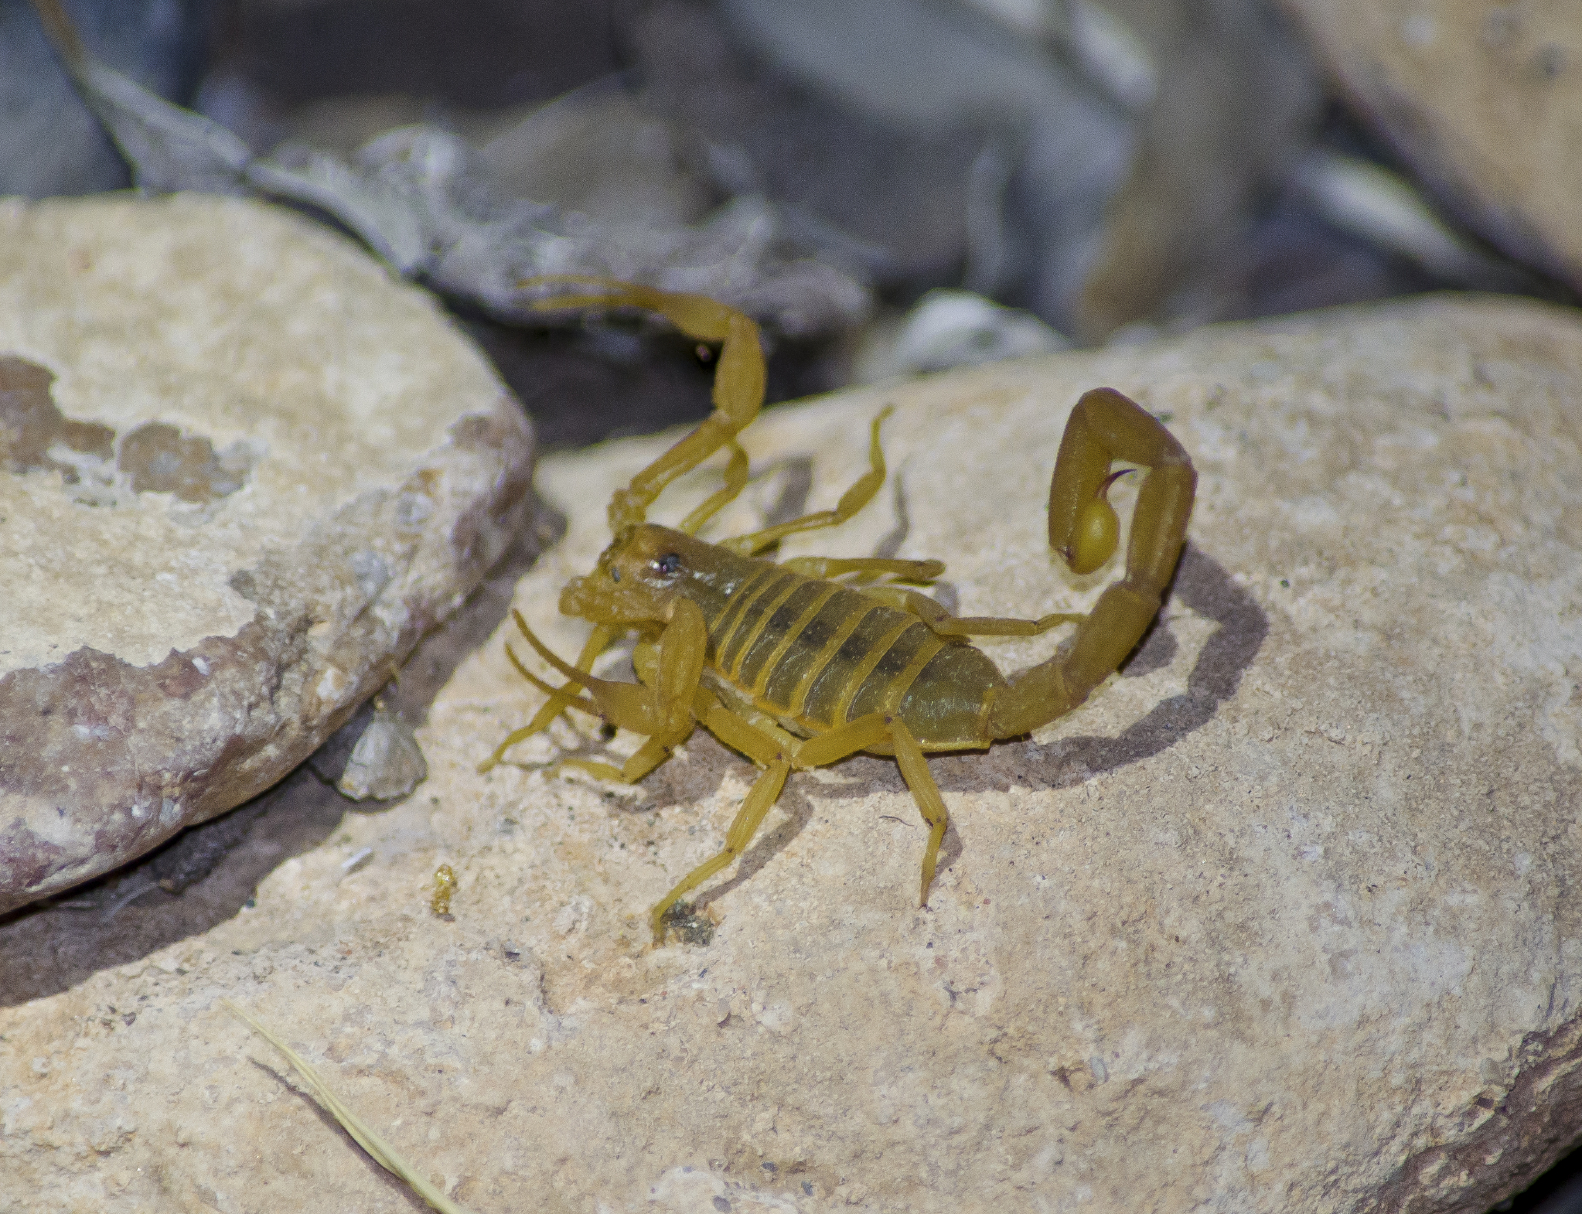 Arizona Bark Scorpion | Pest Control Las Vegas NV